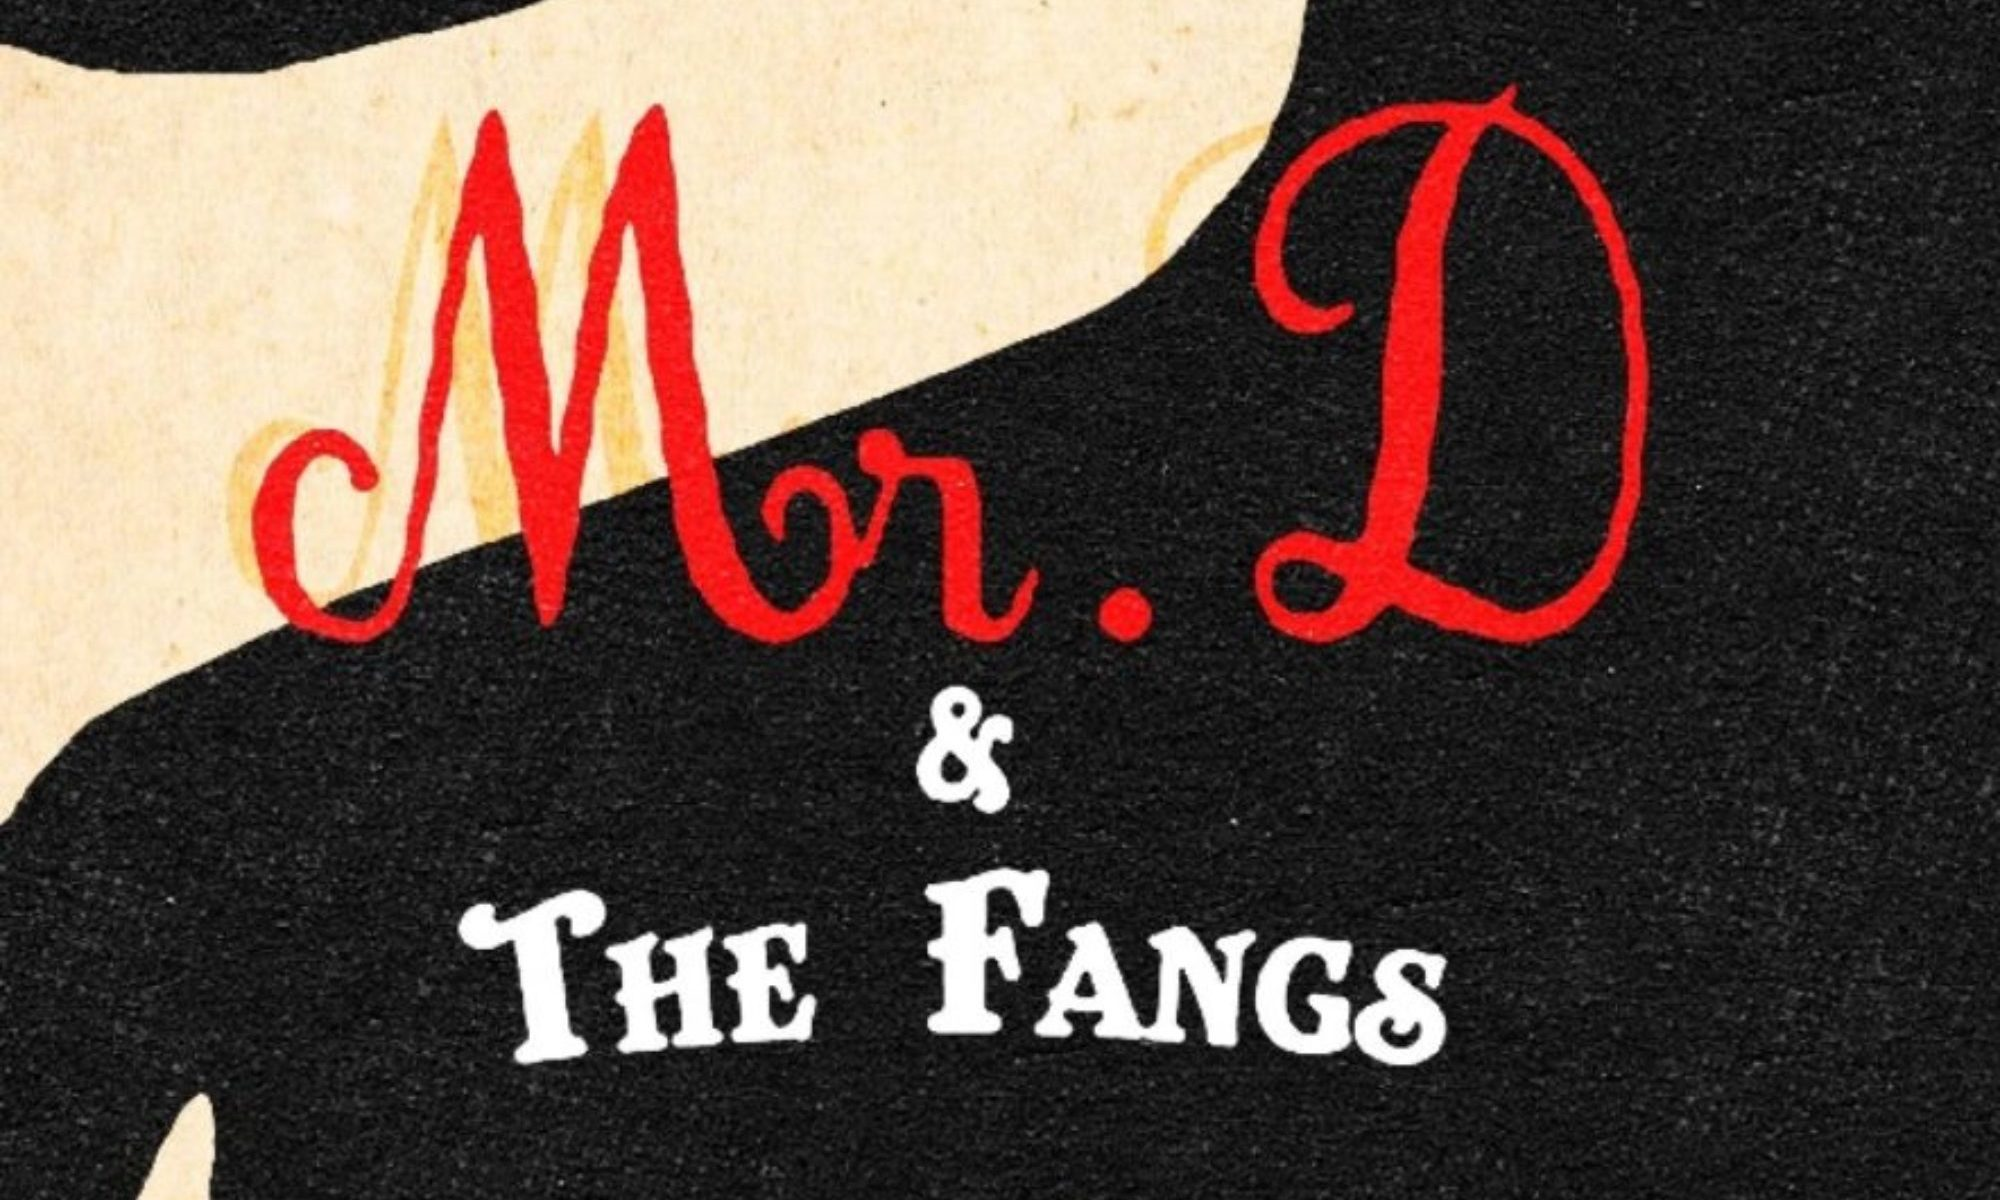 Mr D & The Fangs